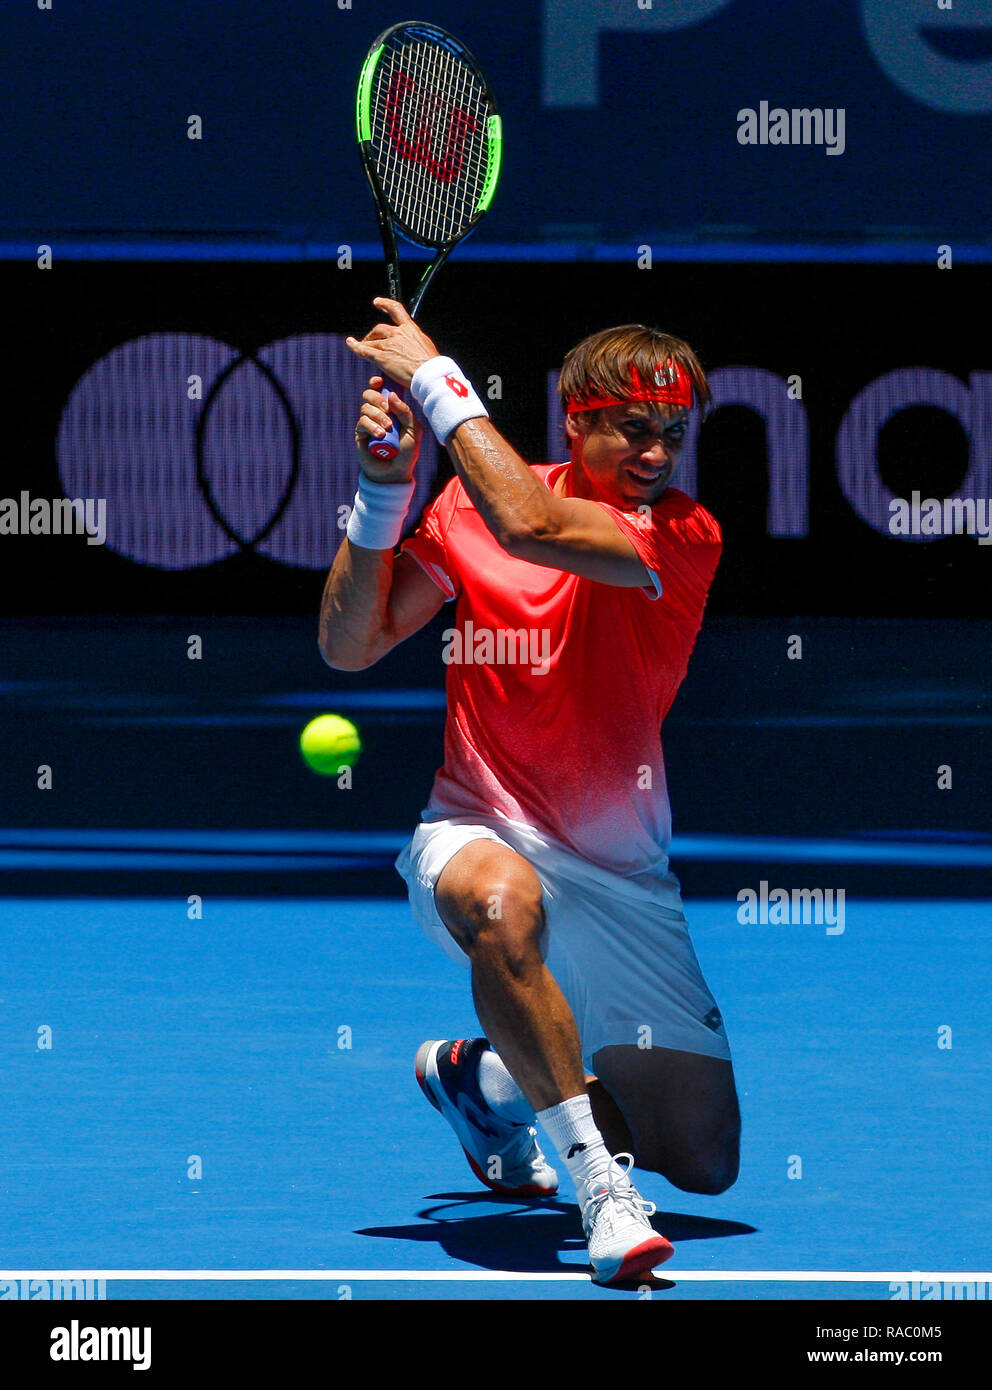 RAC Arena, Perth, Australia. 4th Jan, 2019. Hopman Cup Tennis, sponsored by Mastercard; David Ferrer of Team Spain hits a low running plays a backhand shot against Lucas Pouille of Team France Credit: Action Plus Sports/Alamy Live News - Stock Image